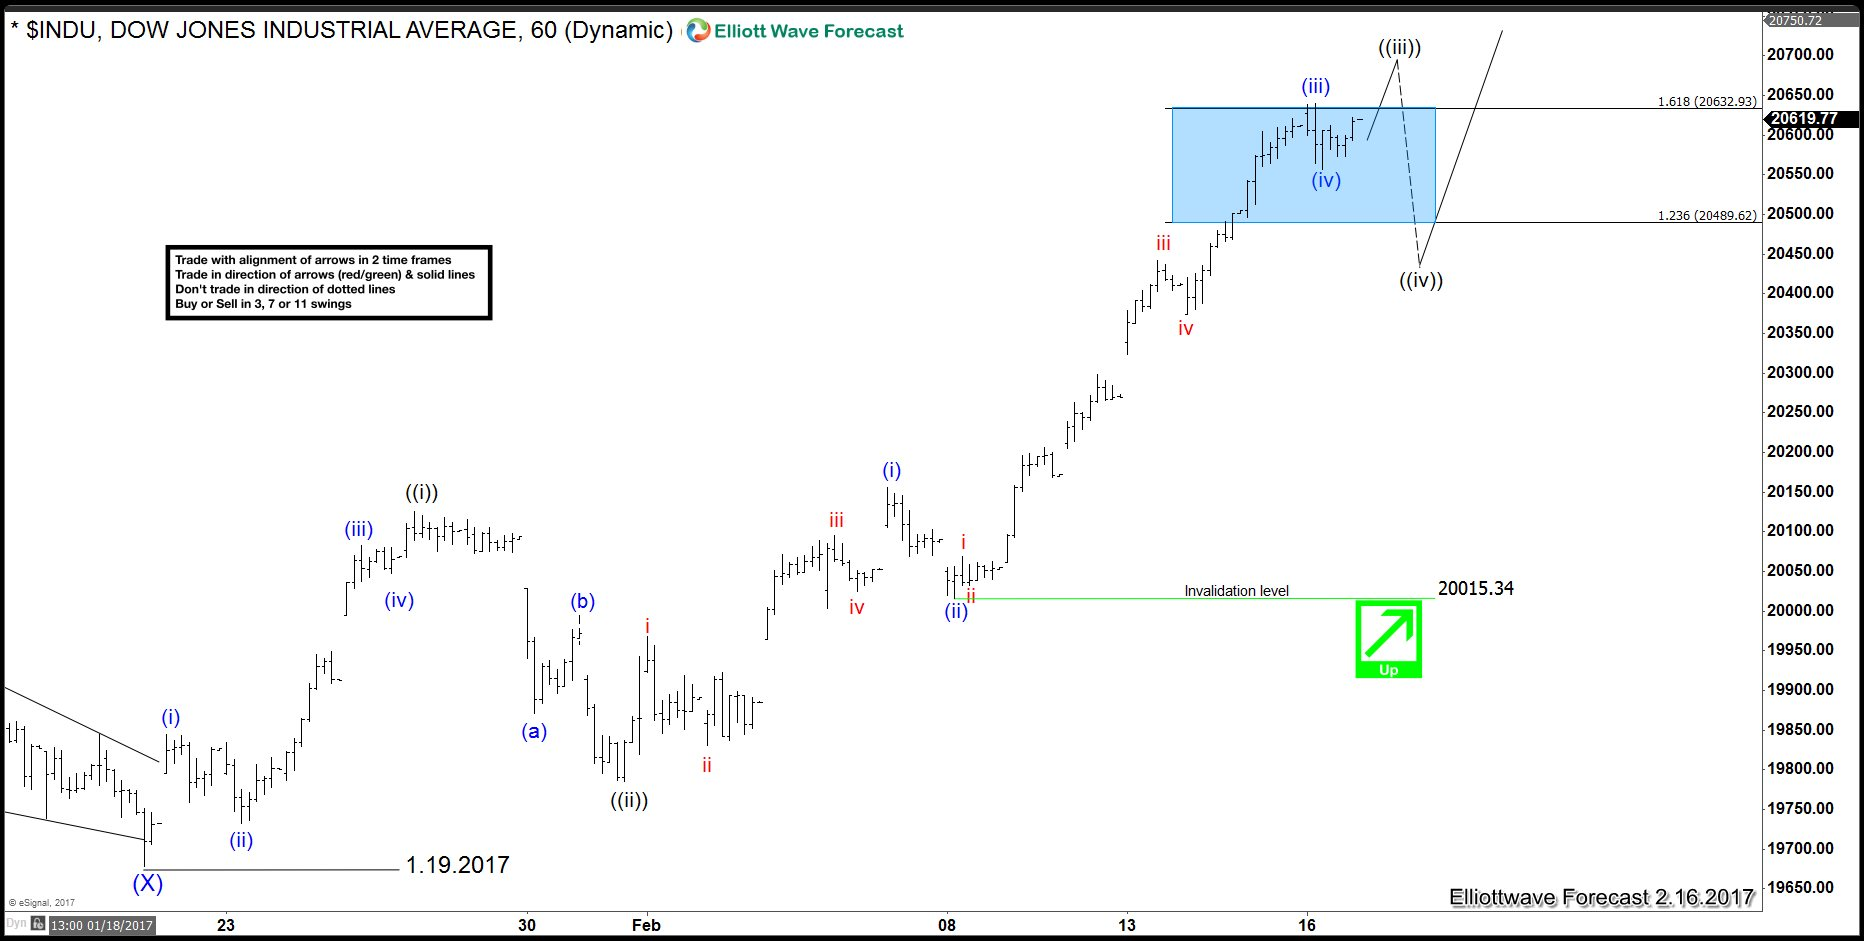 INDU (Dow) 16 Feb 1 Hour Elliott Wave Analysis